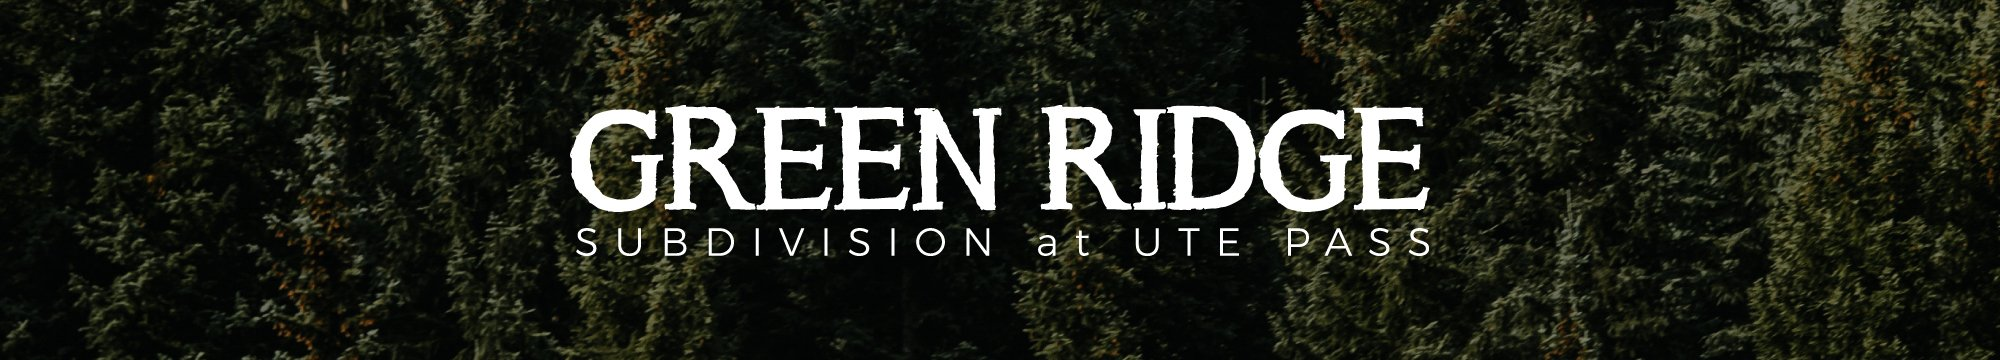 Green Ridge Subdivision